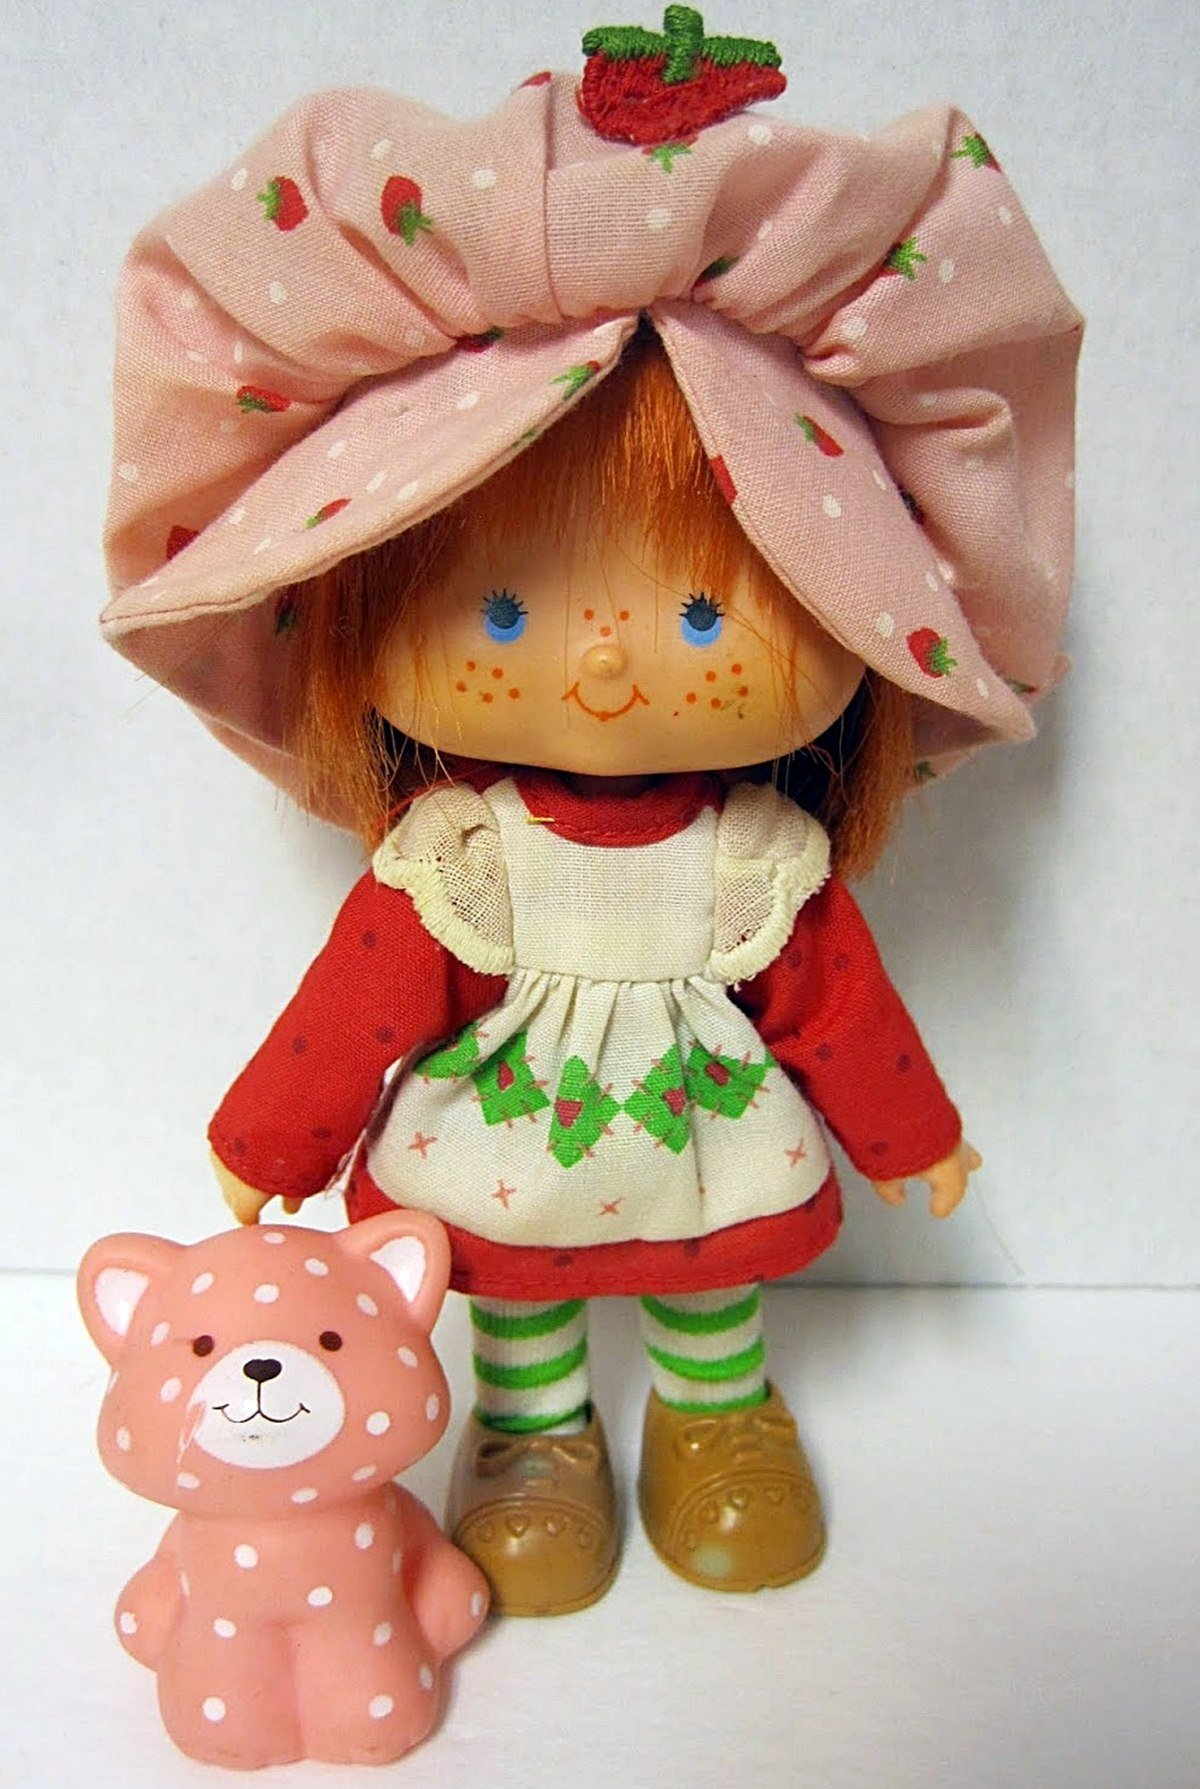 8 12 10 Cuddly Toys All 80s Girls Wanted!